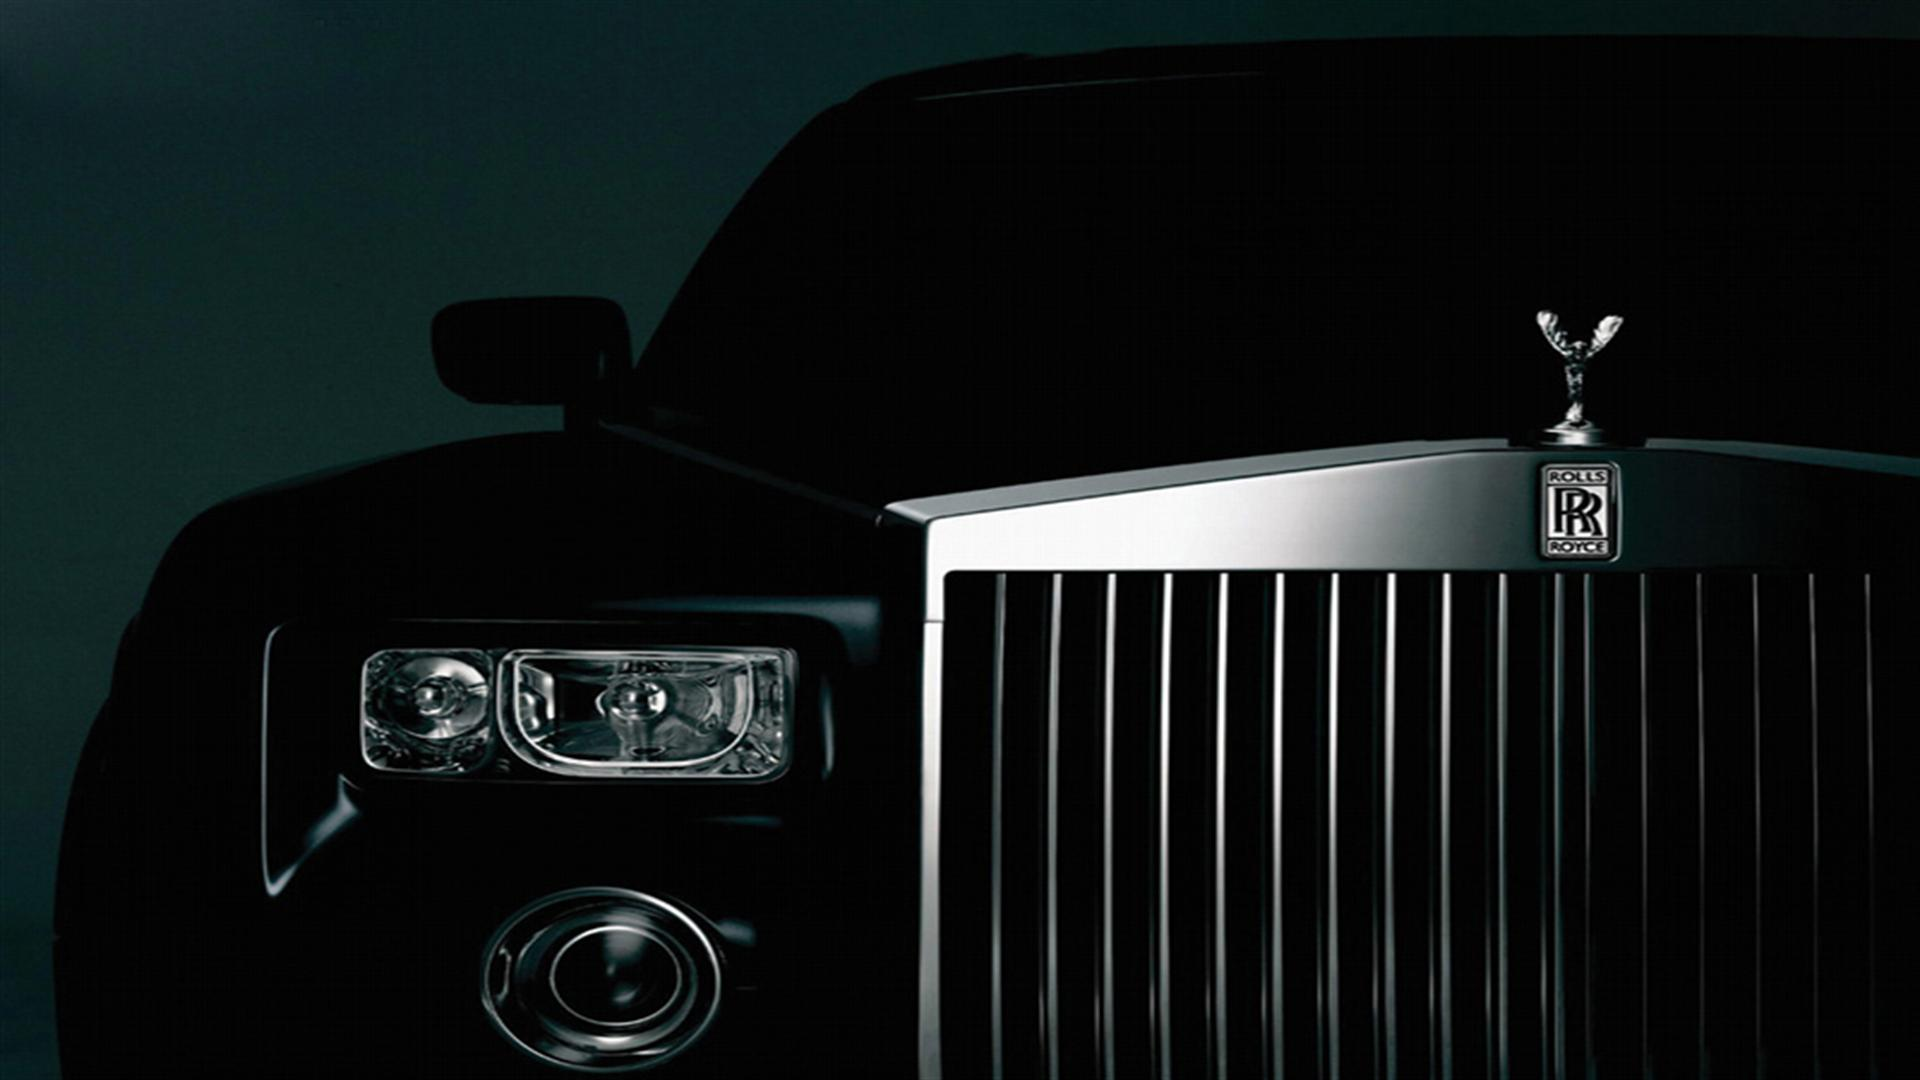 Rolls royce wallpapers 22300 1920x1080 px hdwallsource rolls royce wallpapers 22300 voltagebd Gallery